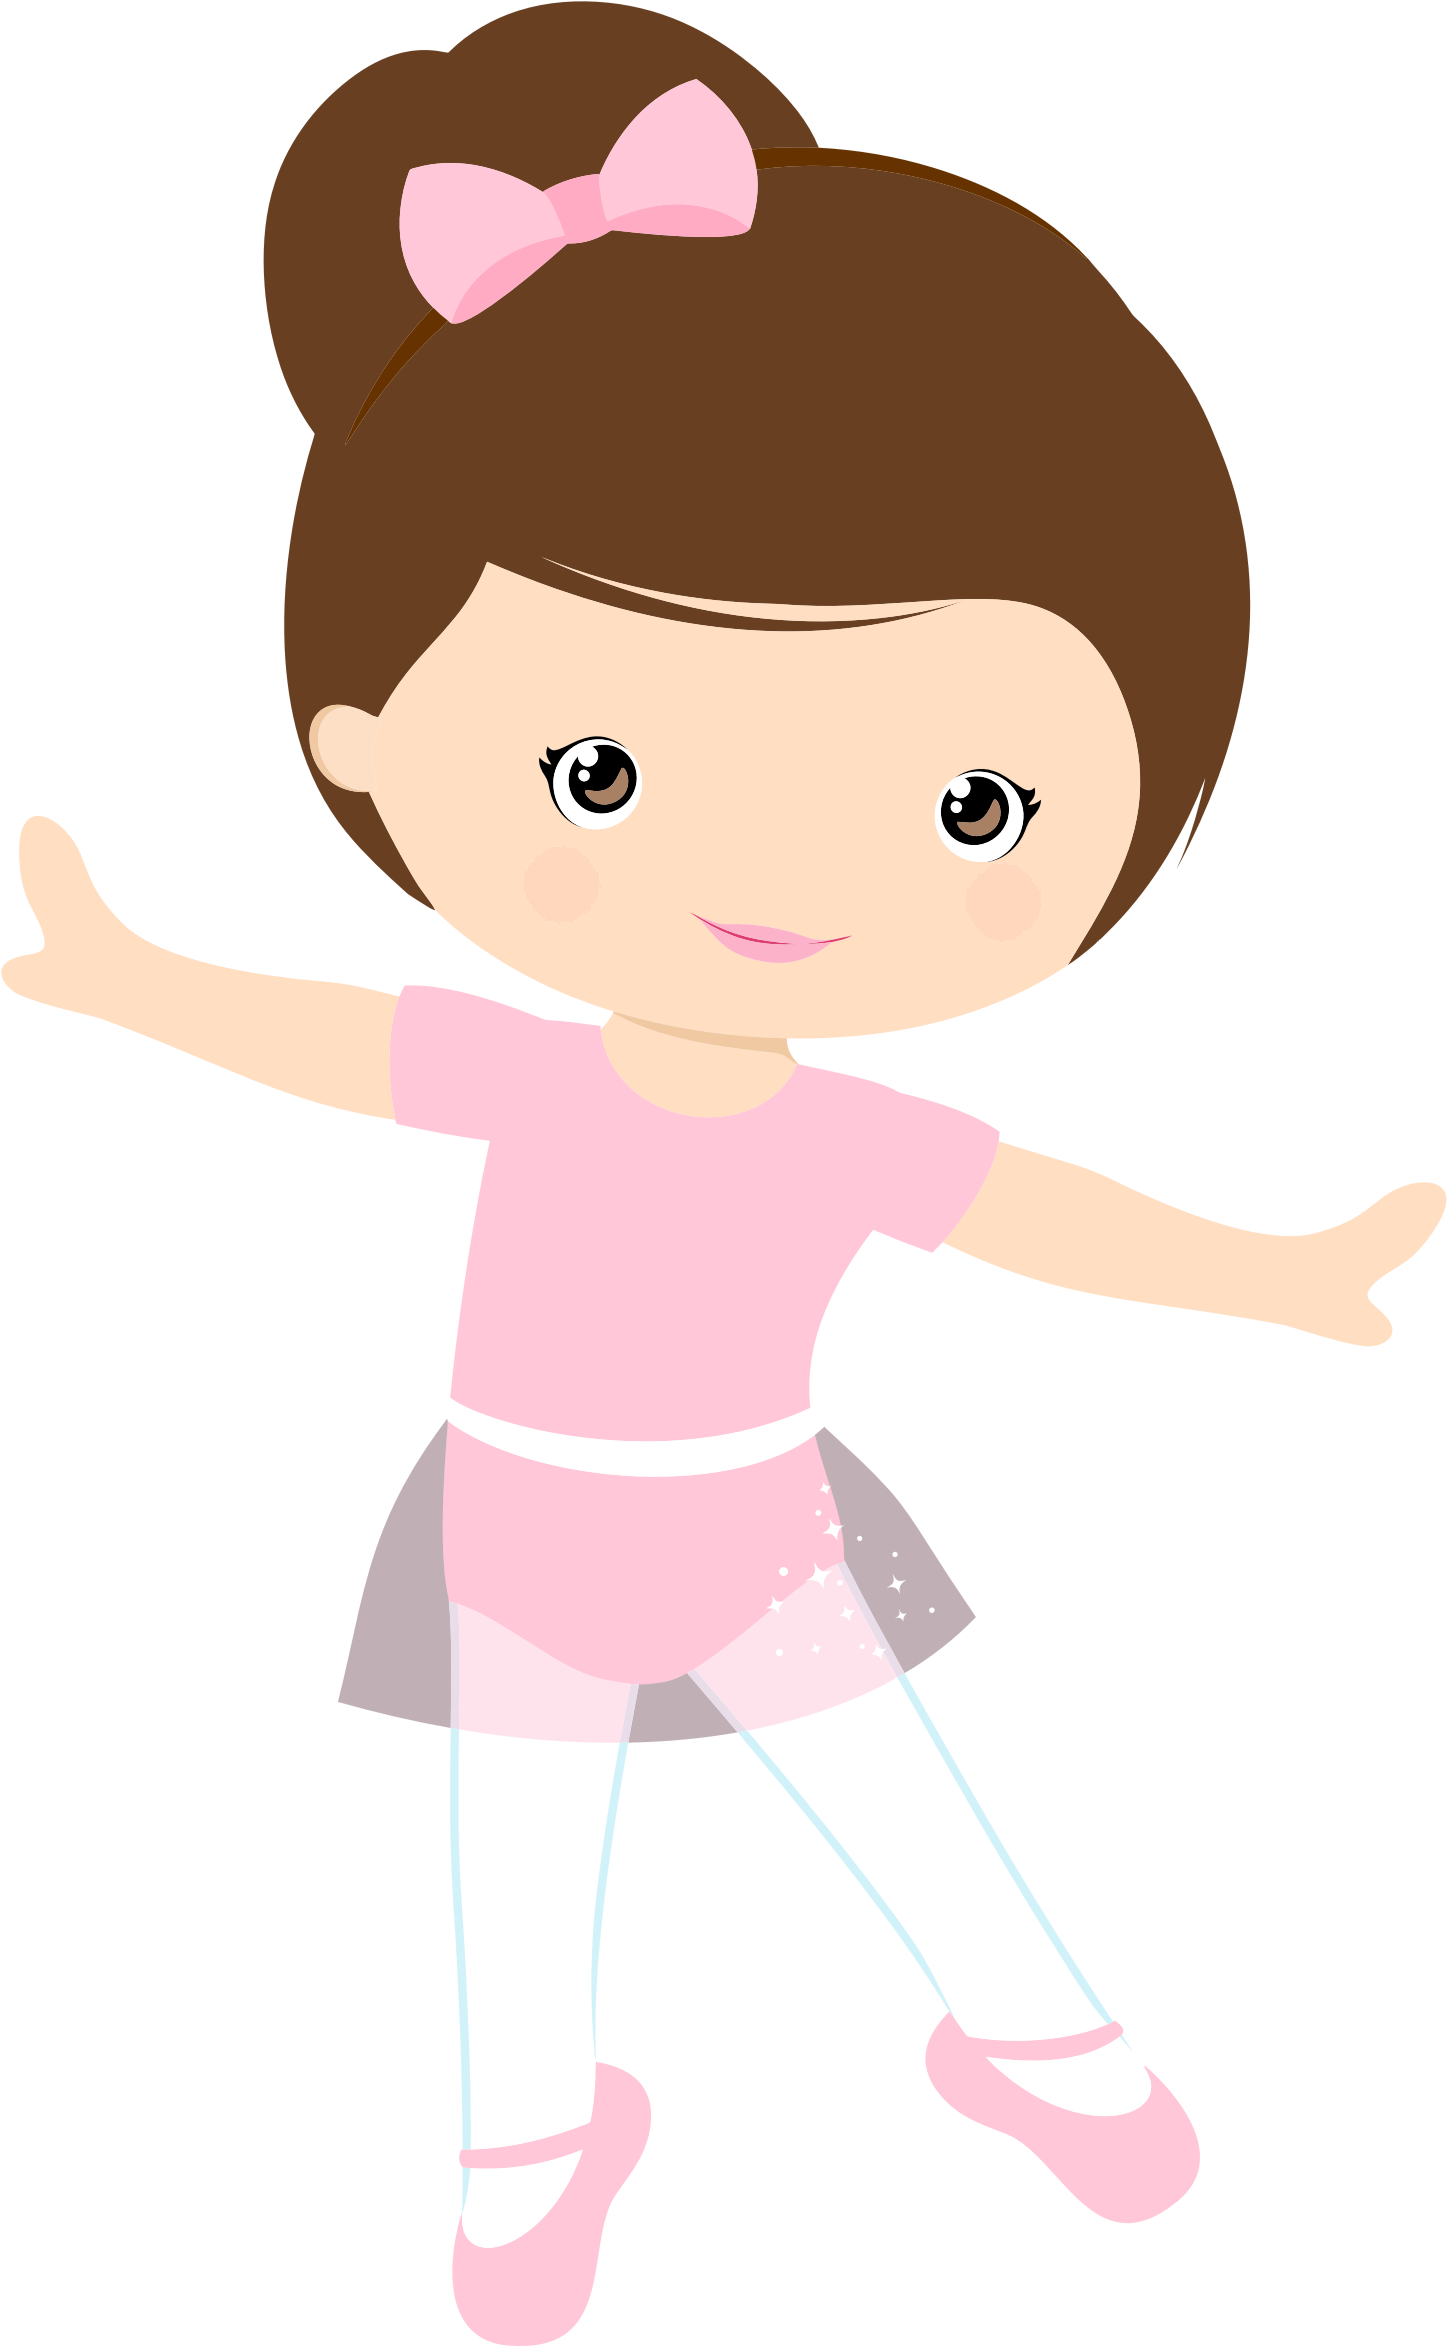 Little ballerina by gdj. Ladybug clipart baby girl